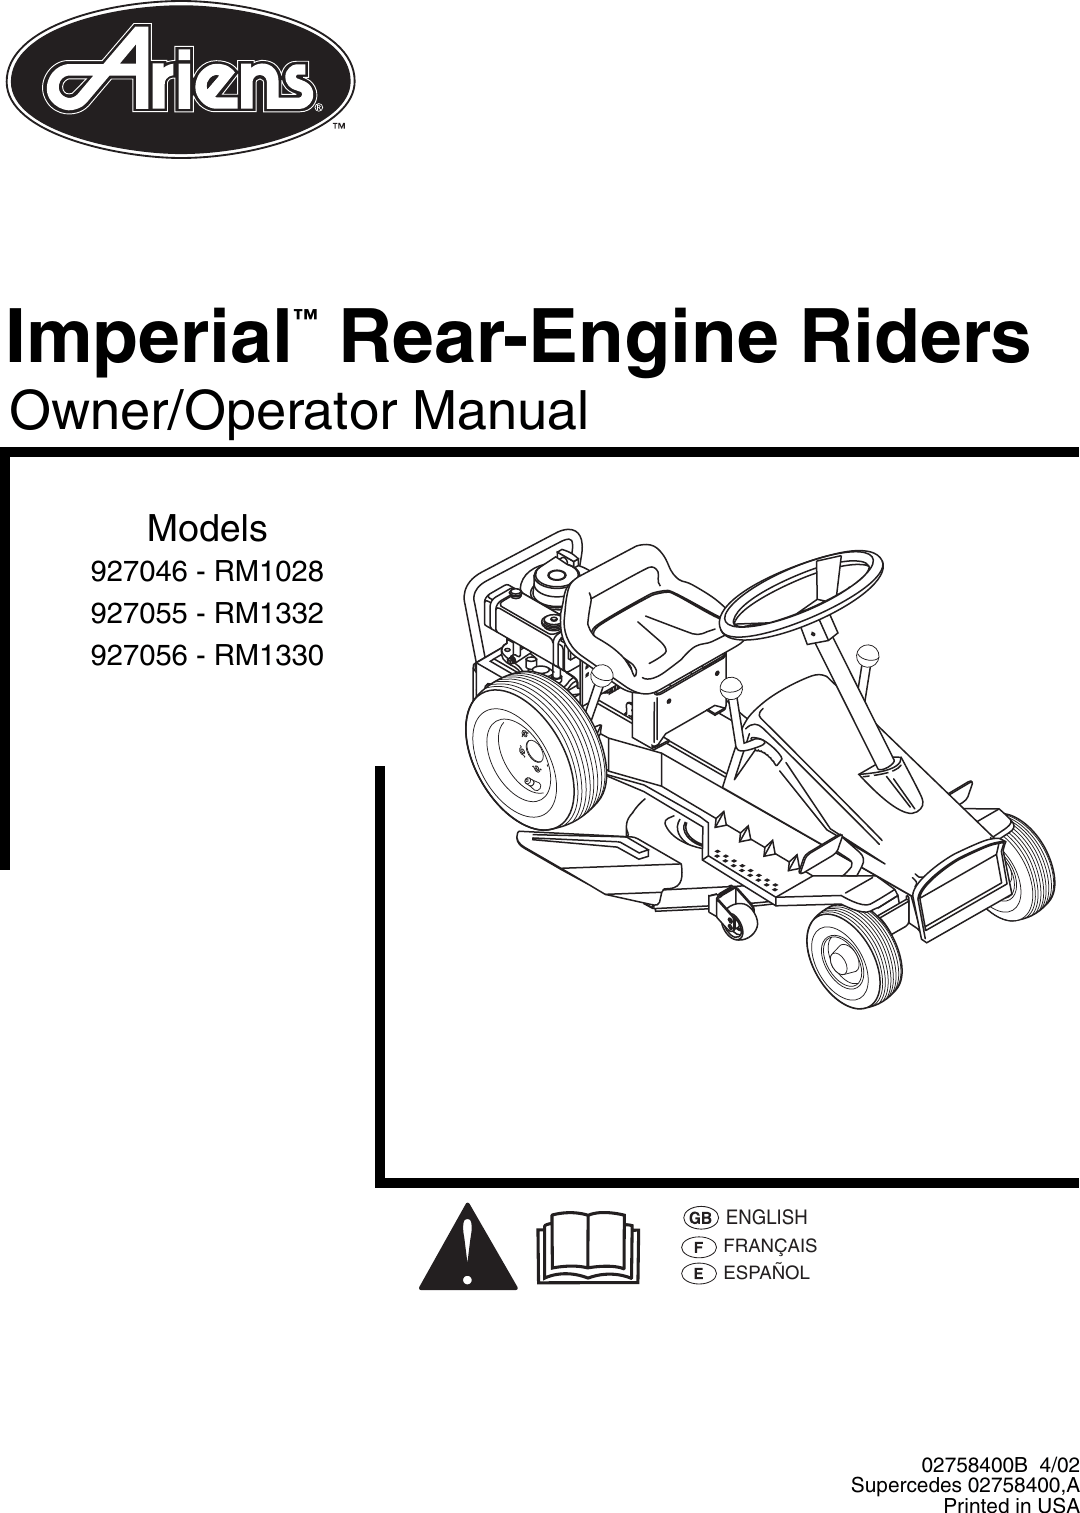 Ariens 927056 RM1330 Rear Engine Rider Owner/Operator